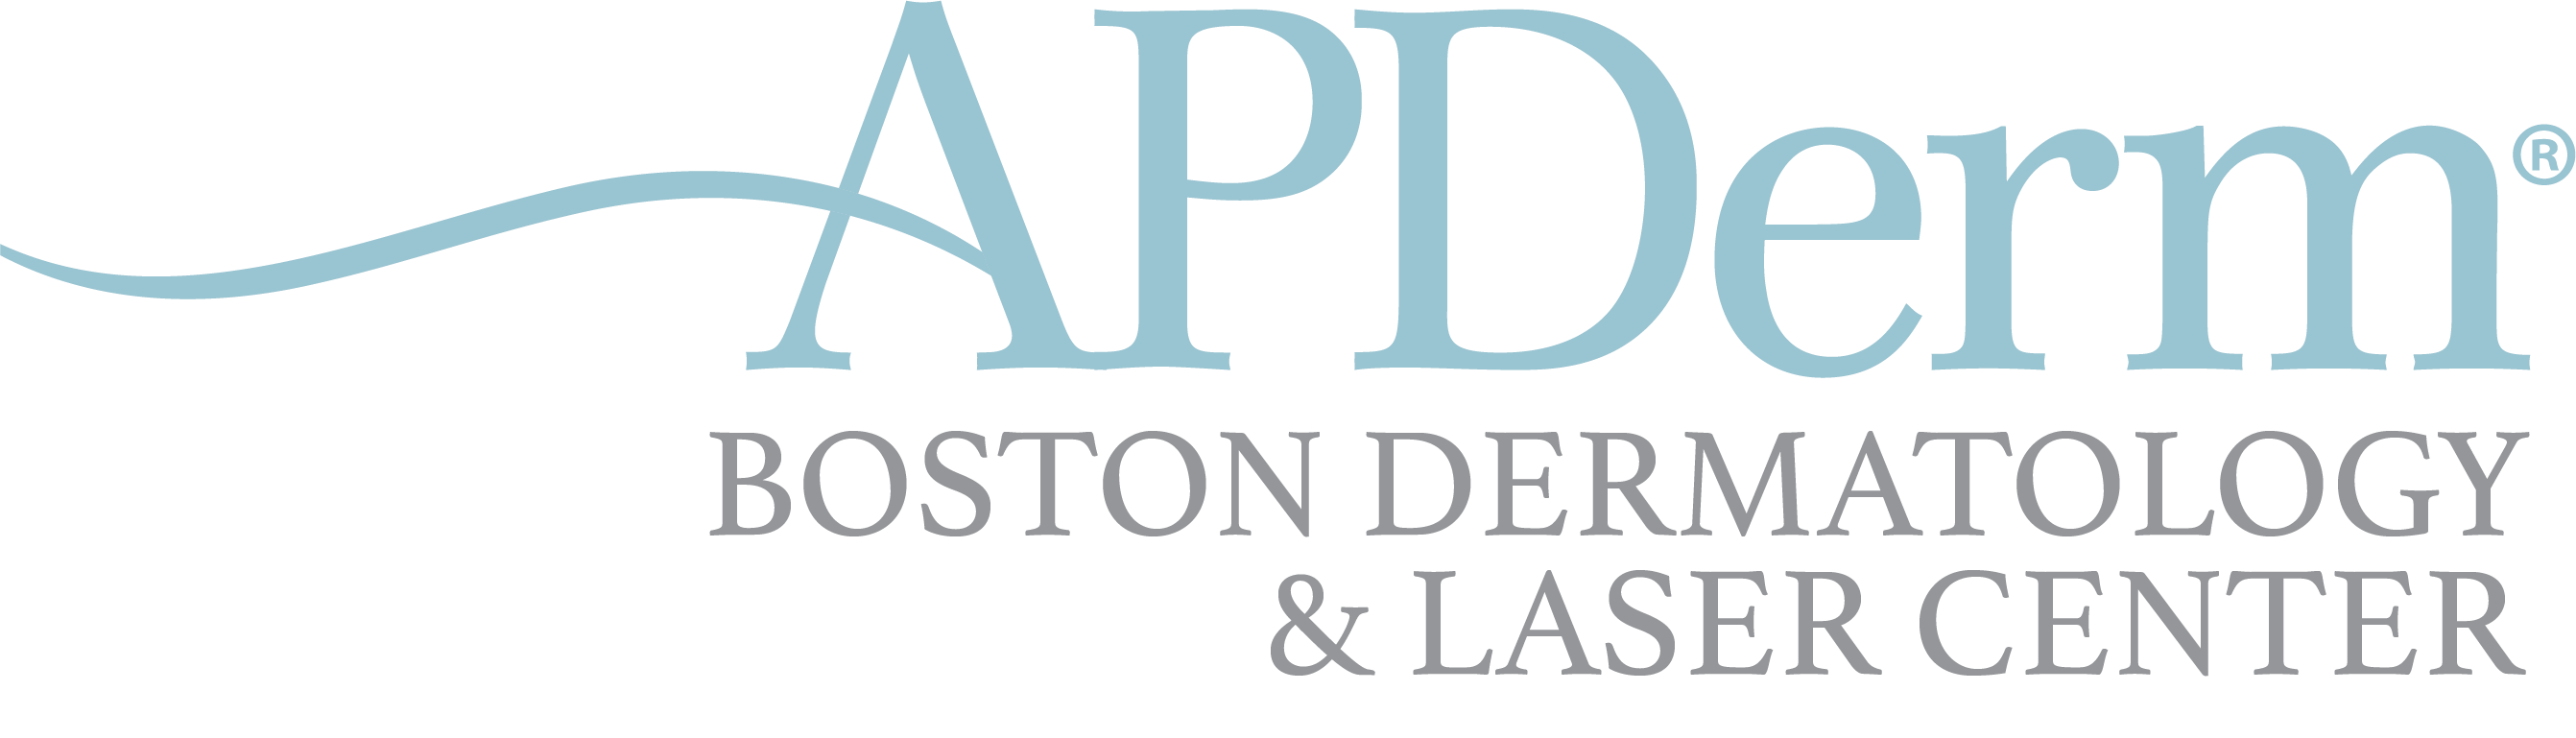 Boston Dermatology and Laser Center